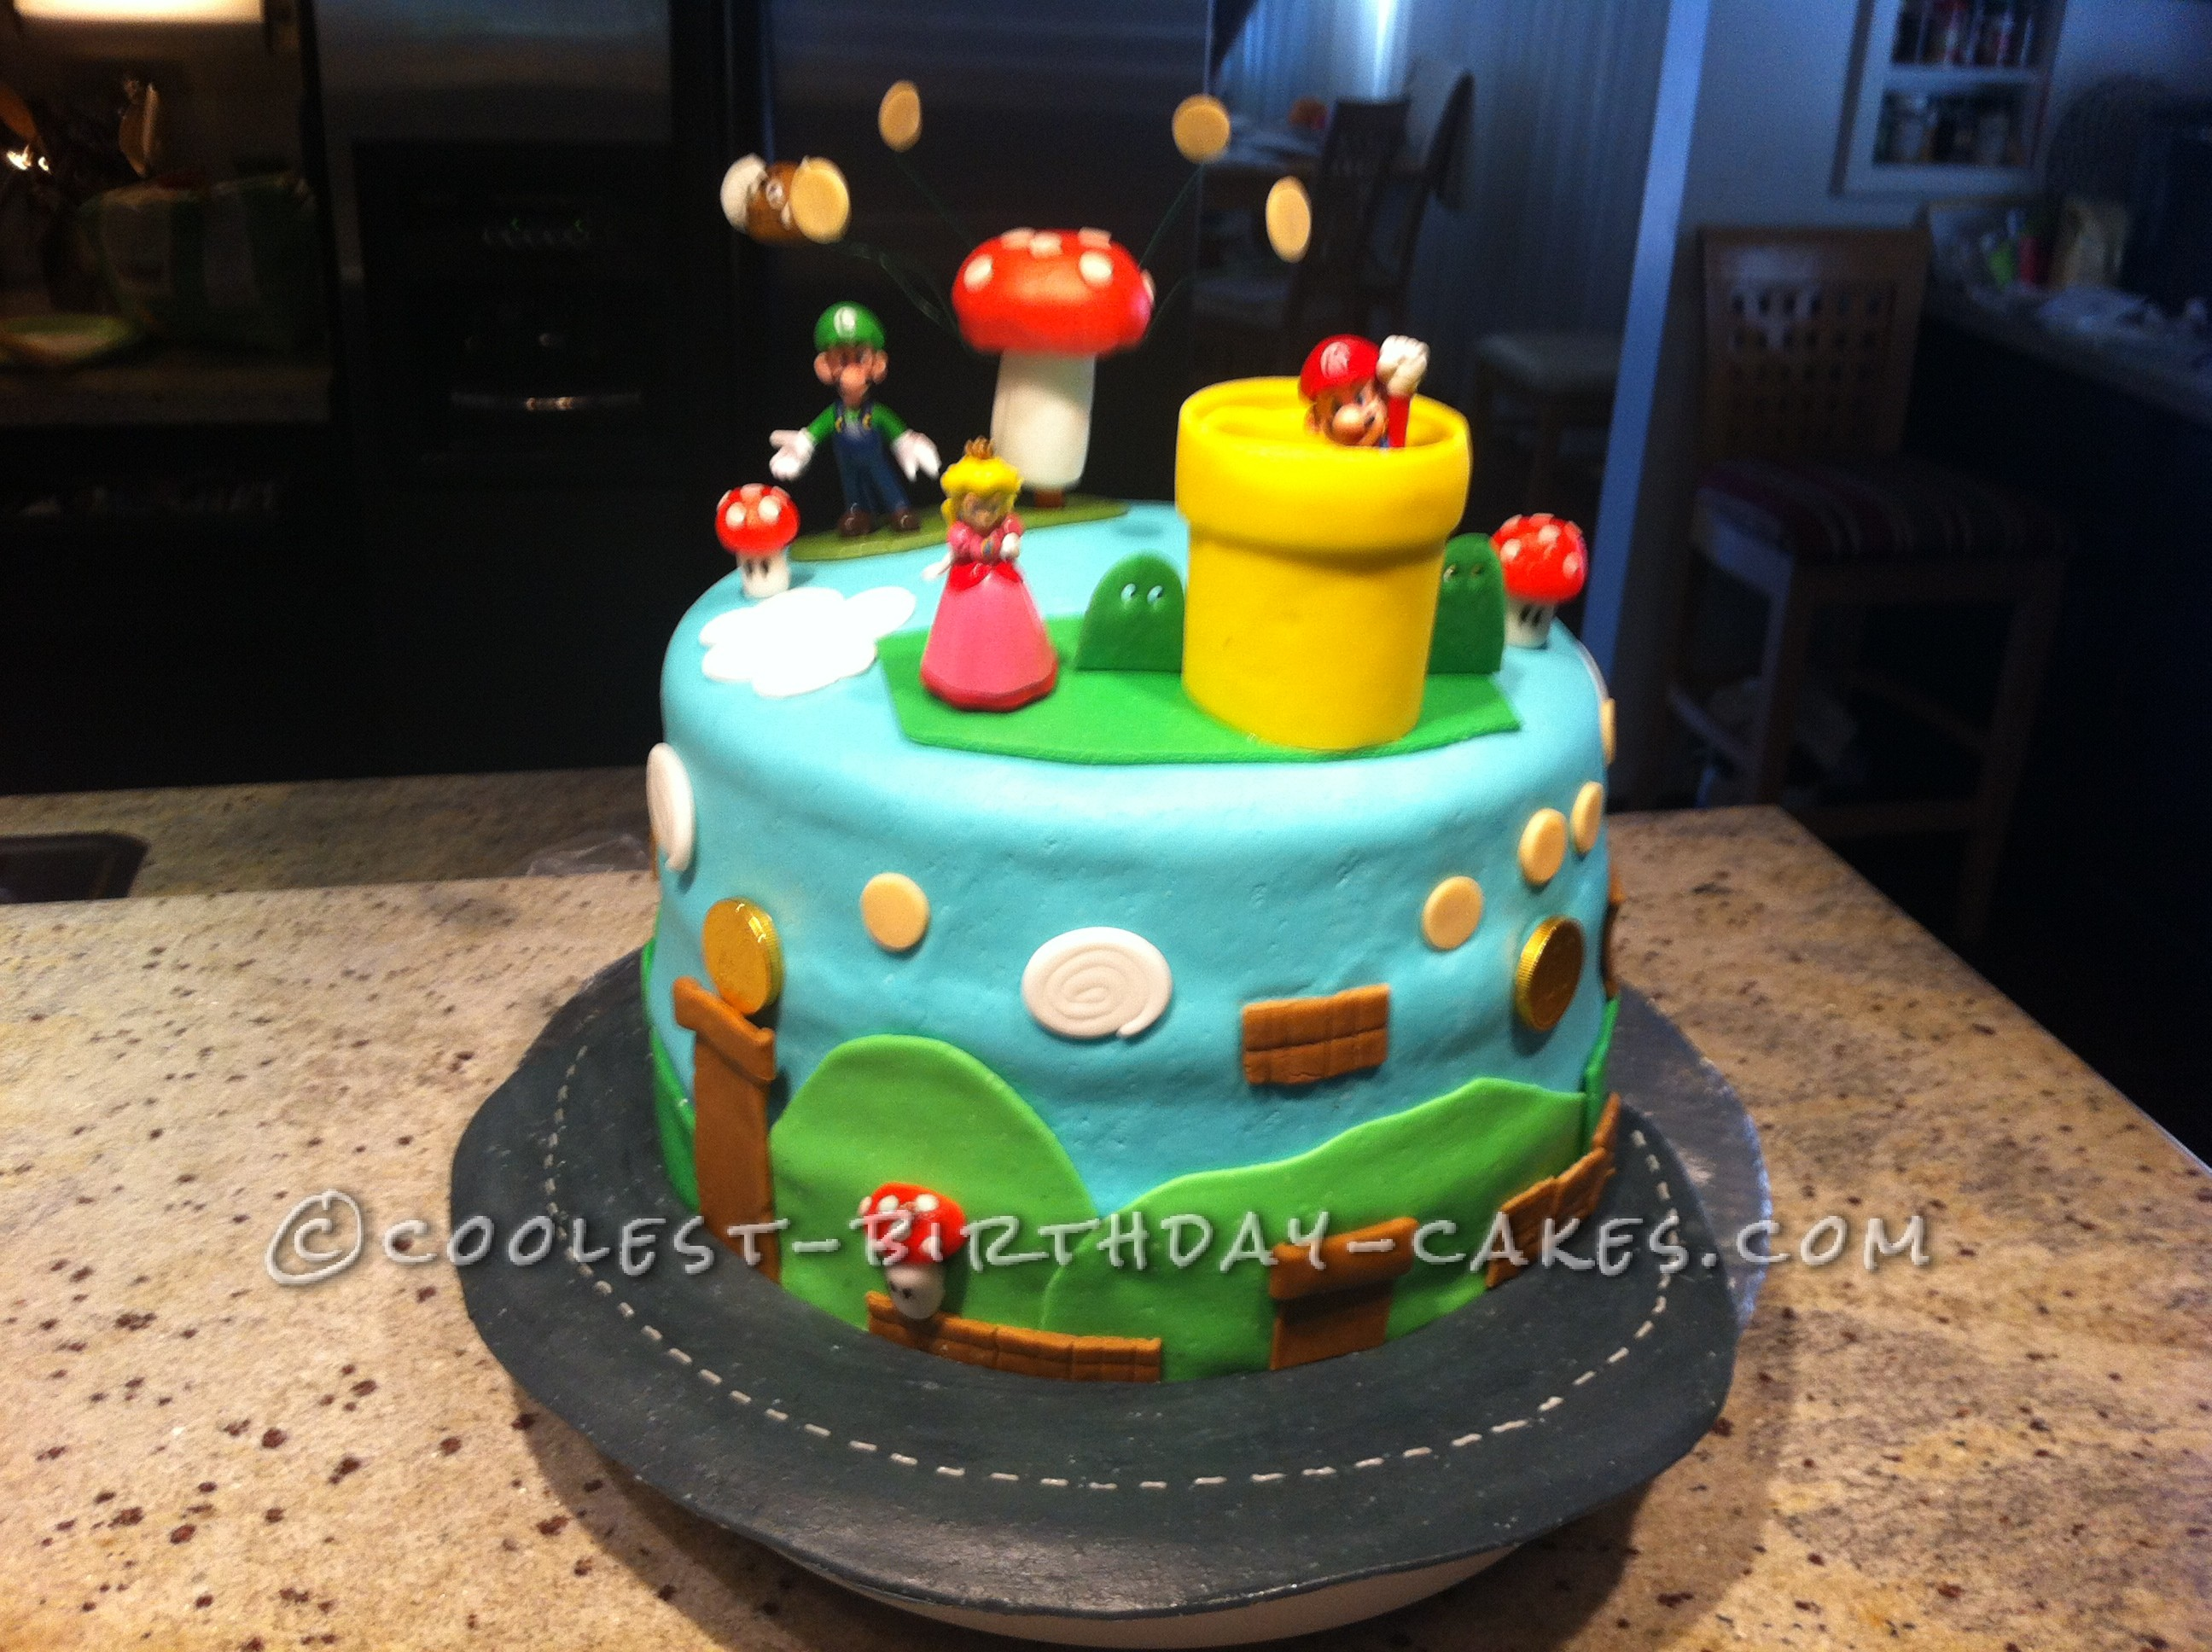 Cool Animated Mario Brothers Birthday Cake